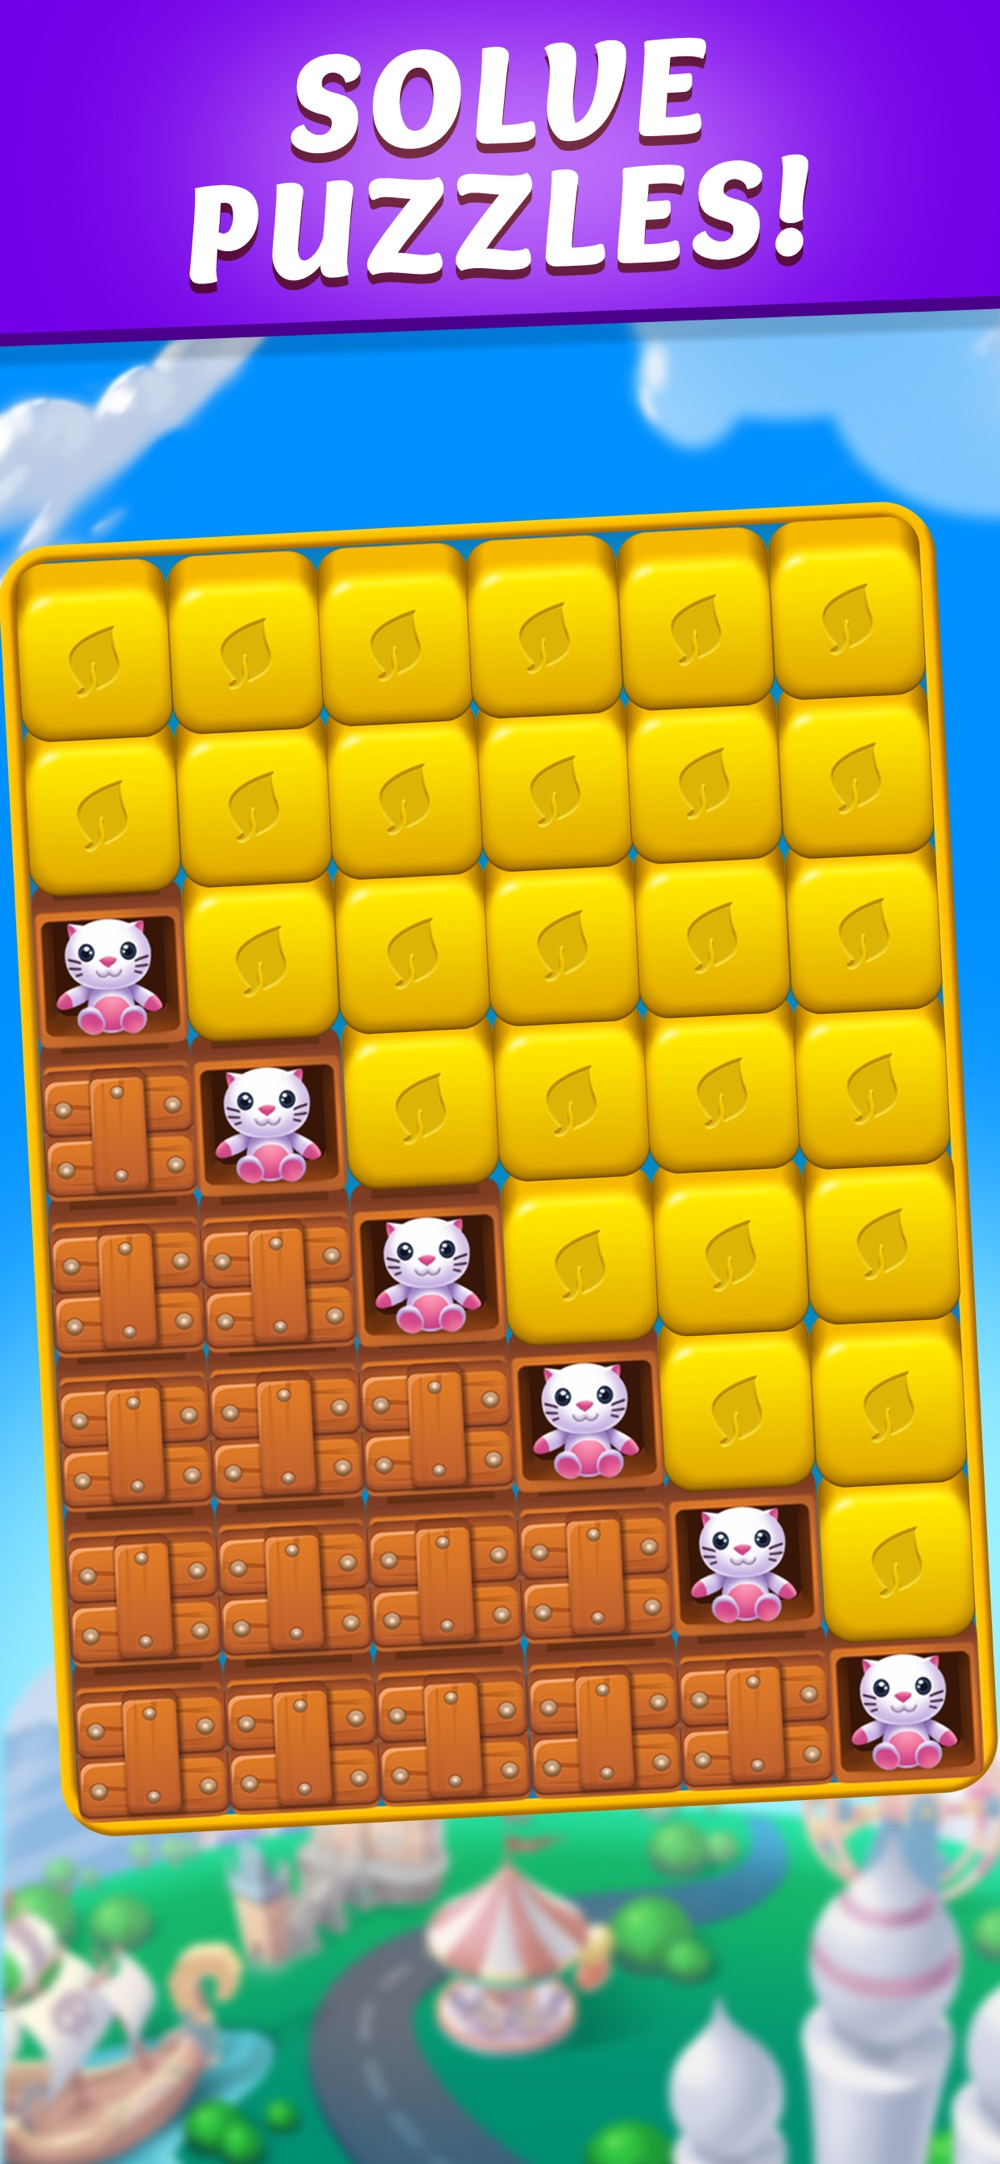 Cube Blast Pop - Tapping Fever hack tool